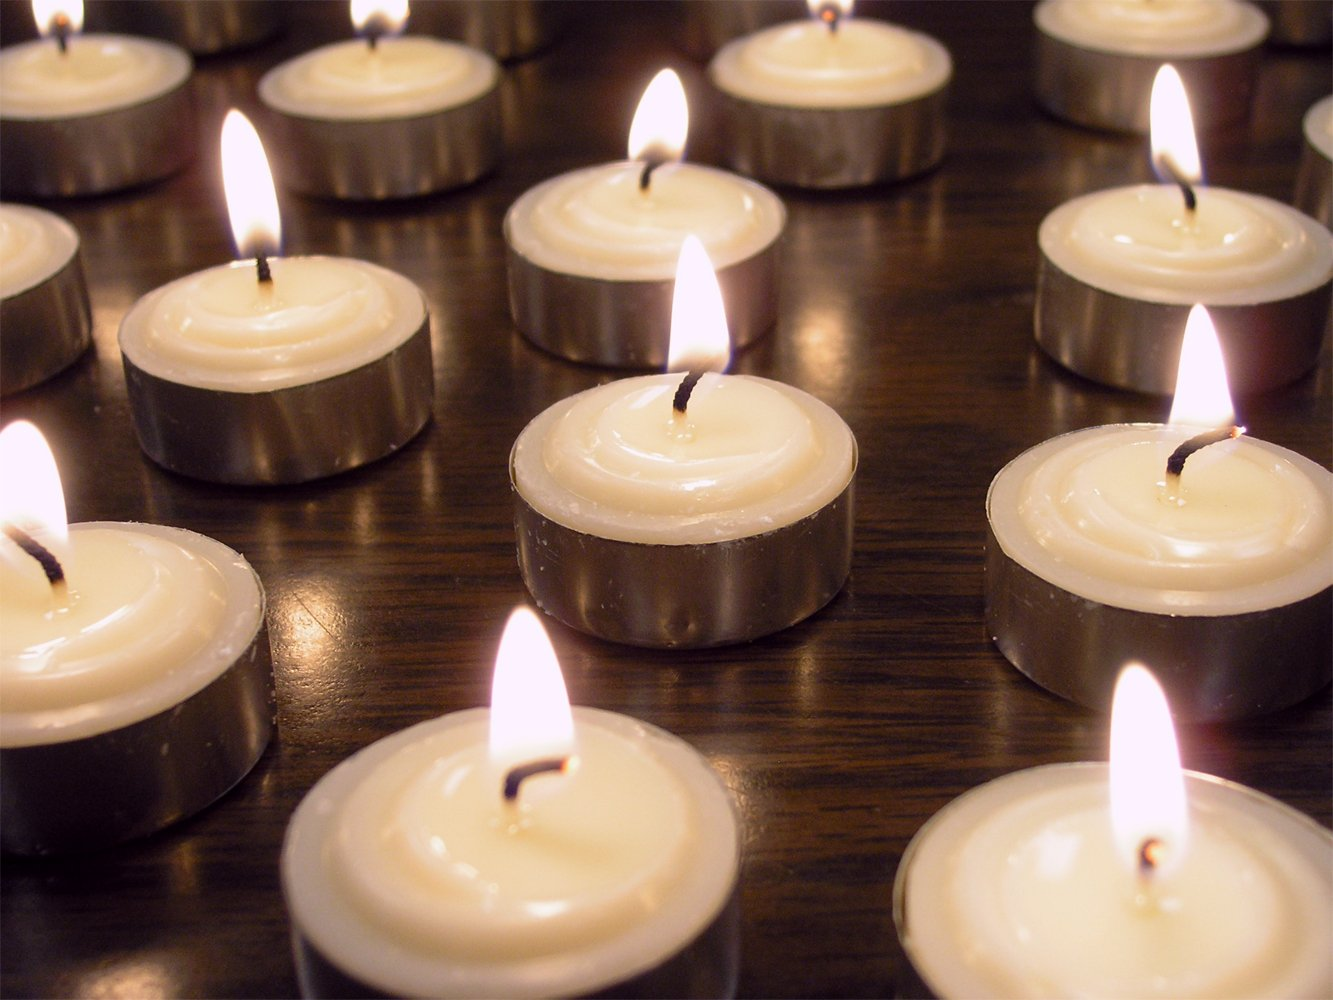 Amazoncom Smokeless Tealight Candles Set Of Unscented White - Restaurant table candles